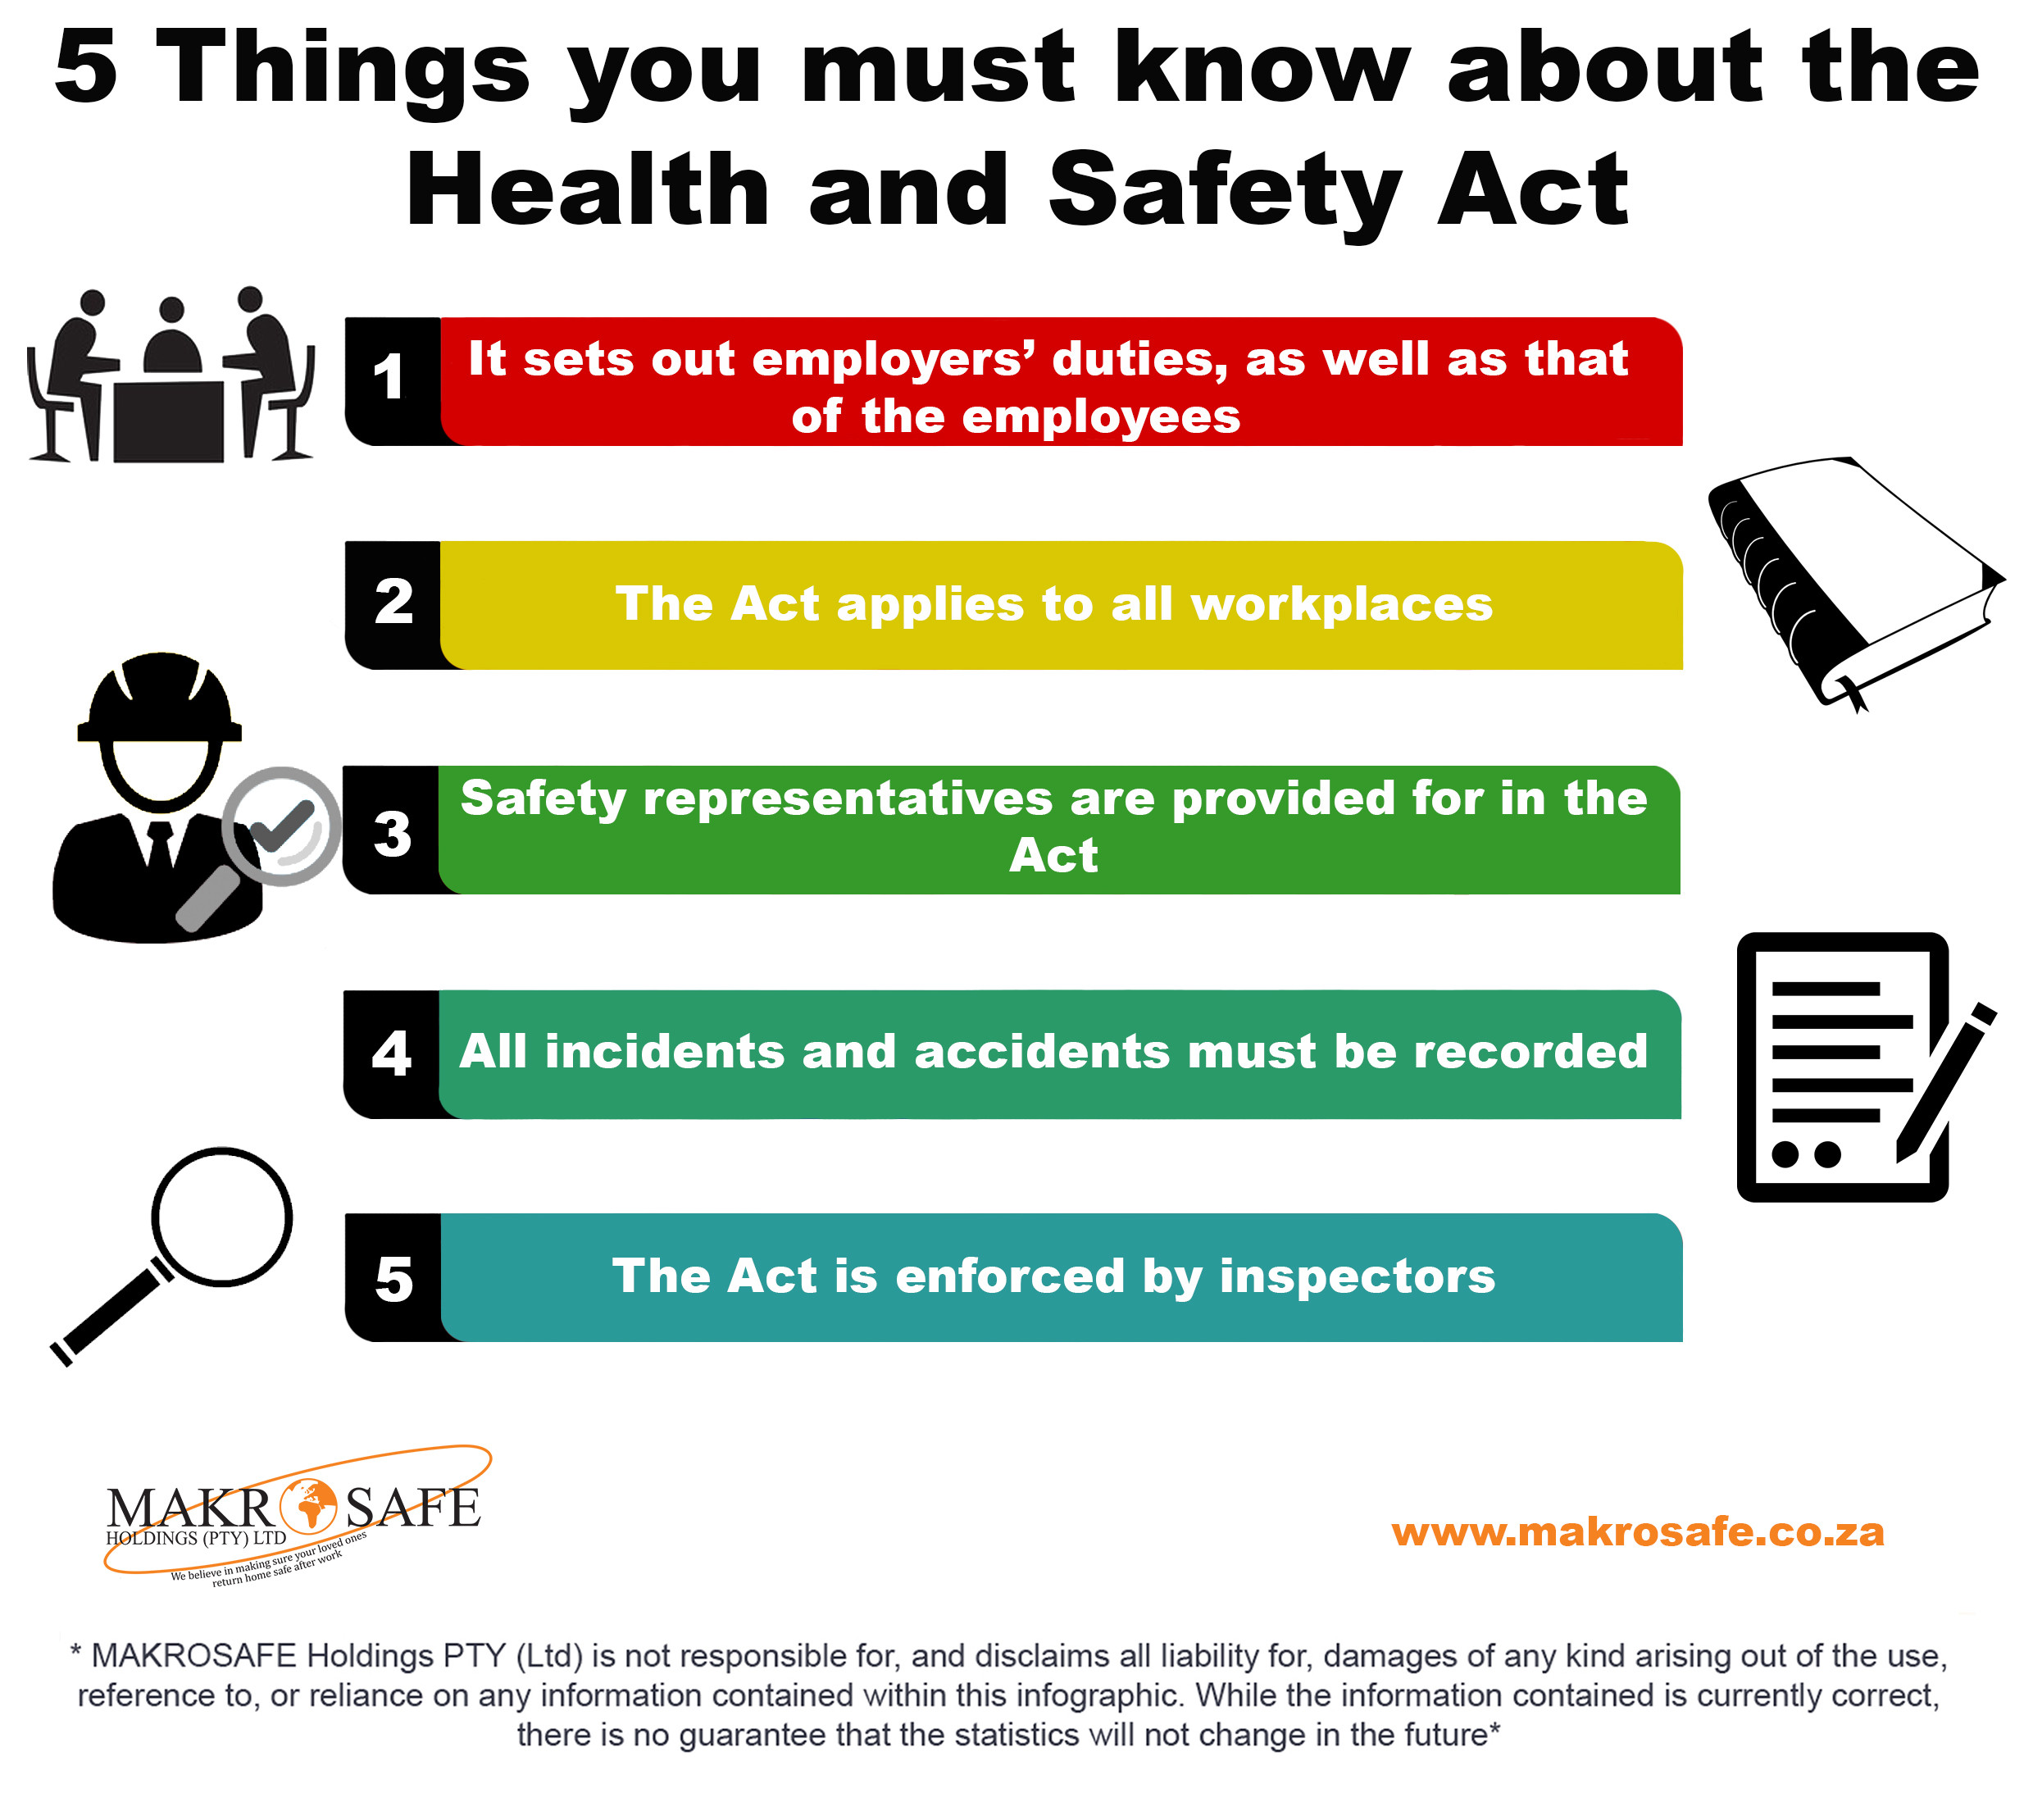 5 things to know about the Health and Safety Act